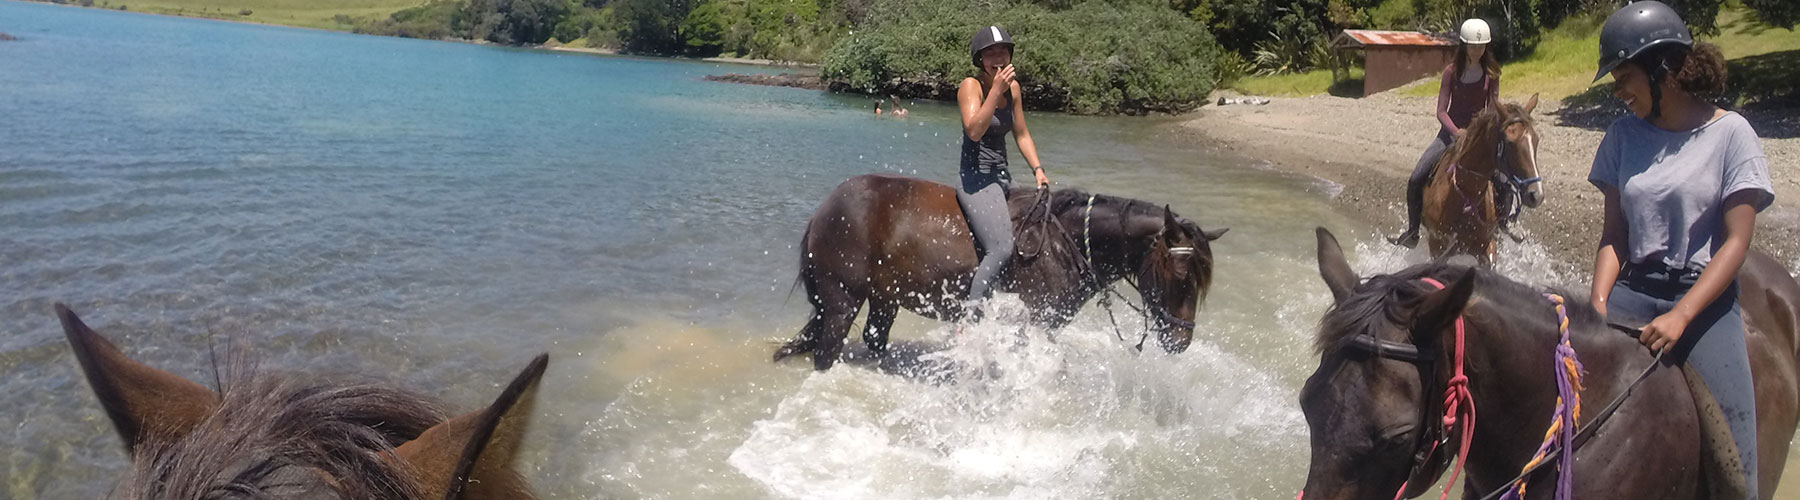 horse-riding Bay of Islands